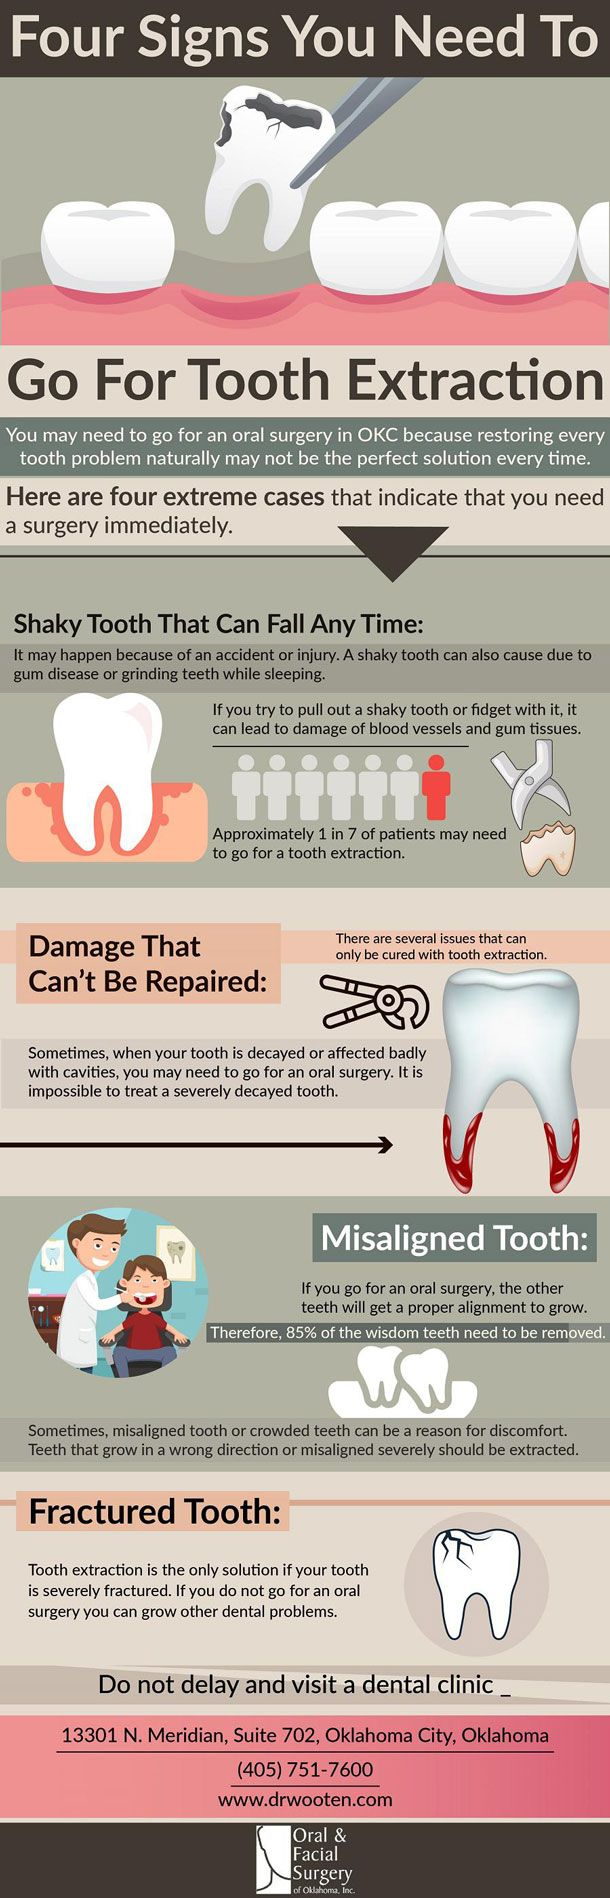 4 Signs You Need Tooth Extraction Infographic Tooth Extraction Dental Facts Oral Surgery